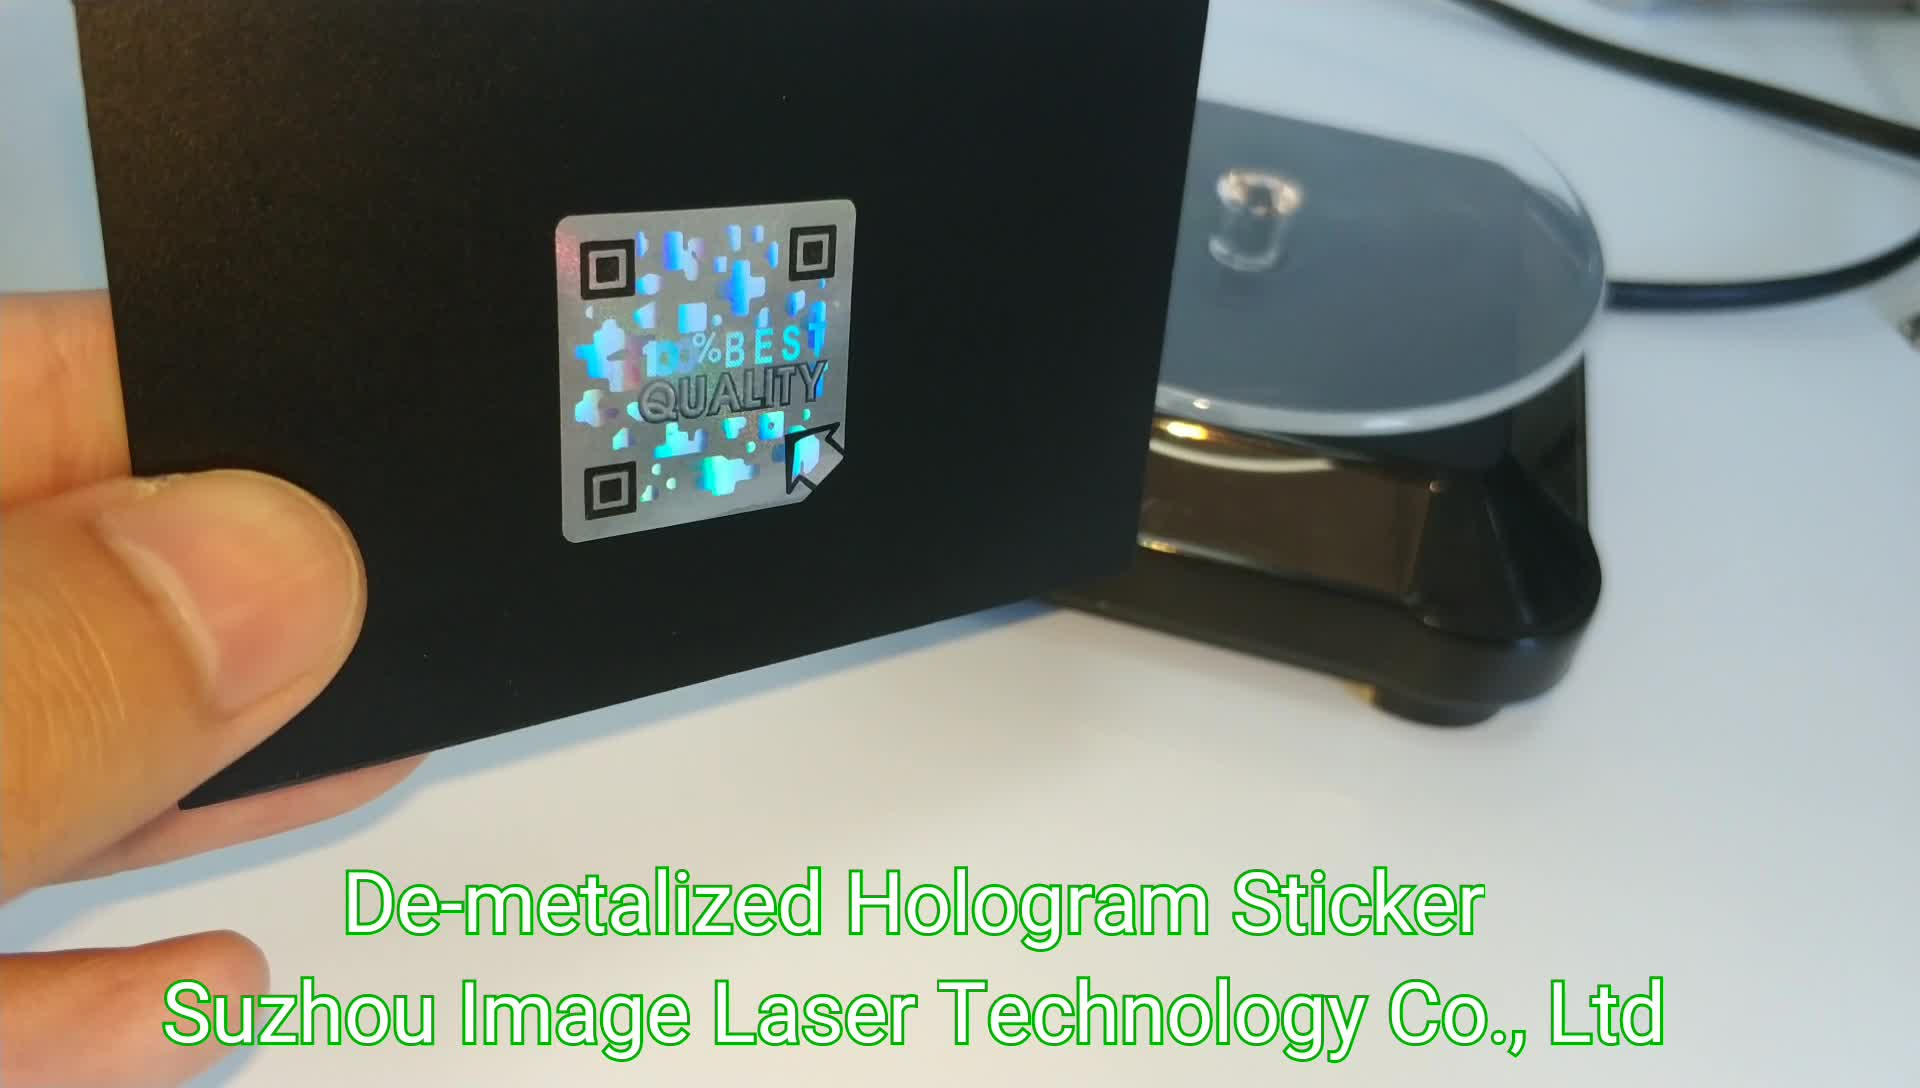 25mm Square De-metalized Hologram Sticker